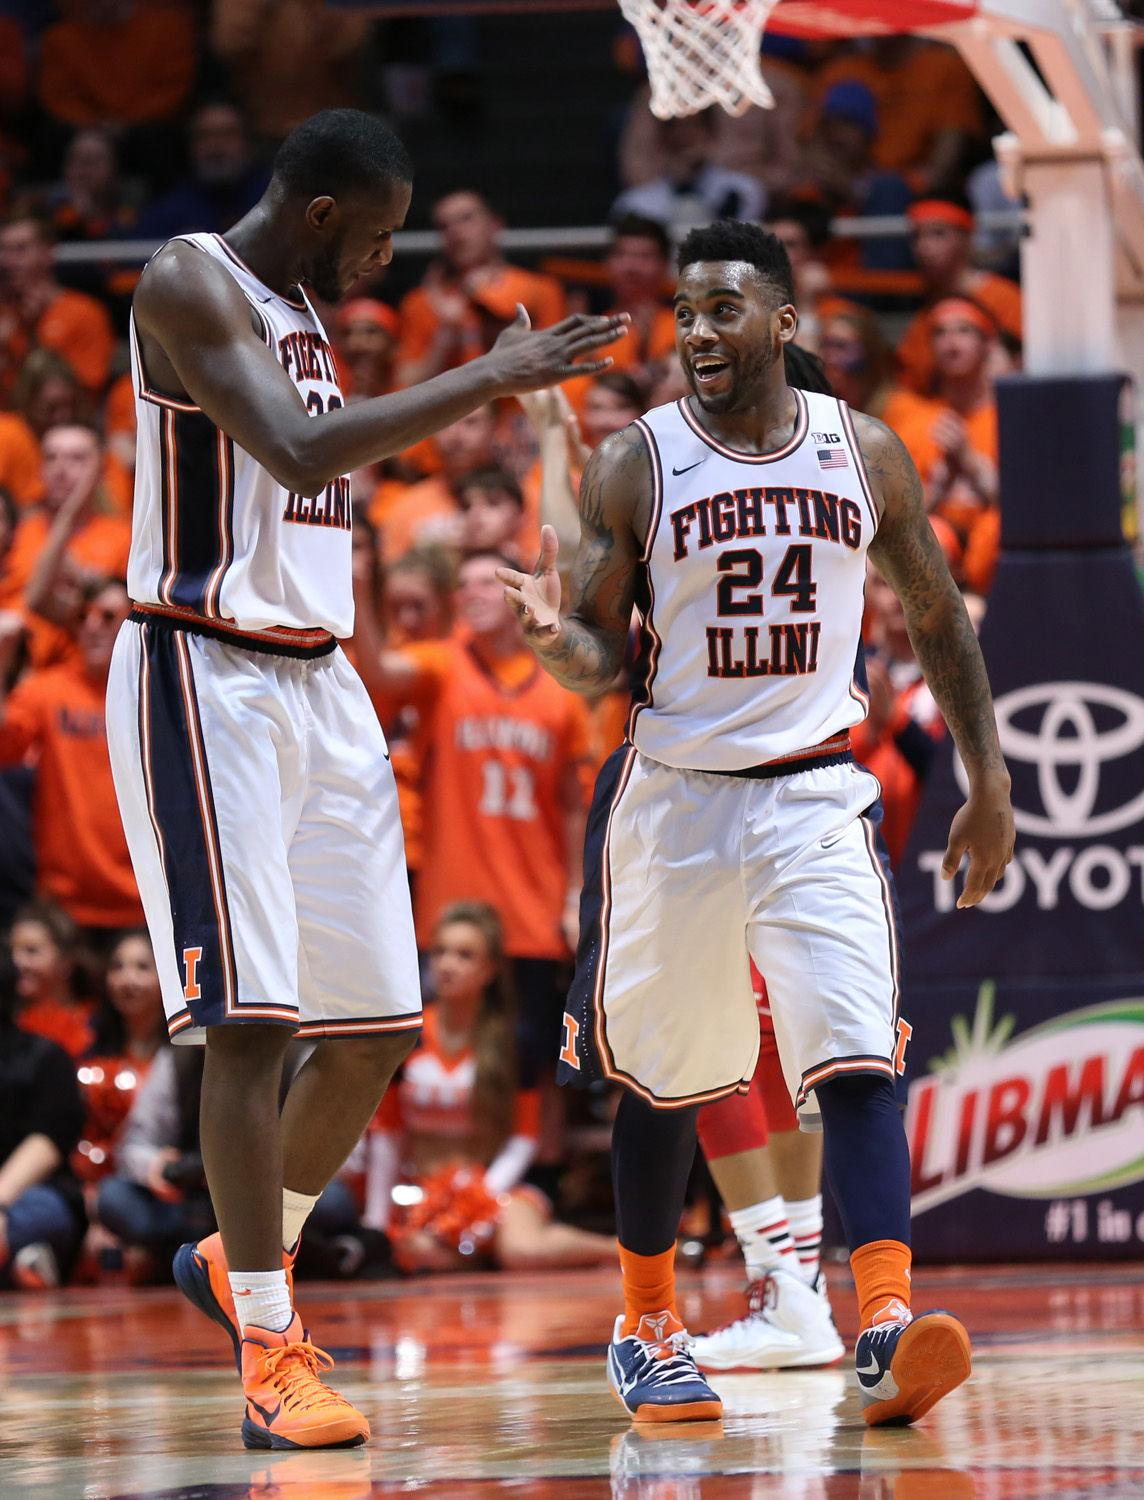 Illinois' Nnanna Egwu (32) and Rayvonte Rice (24) react after a point during the game against Nebraska at State Farm Center, on Wednesday, March 5, 2015. The Illini won 69-57.